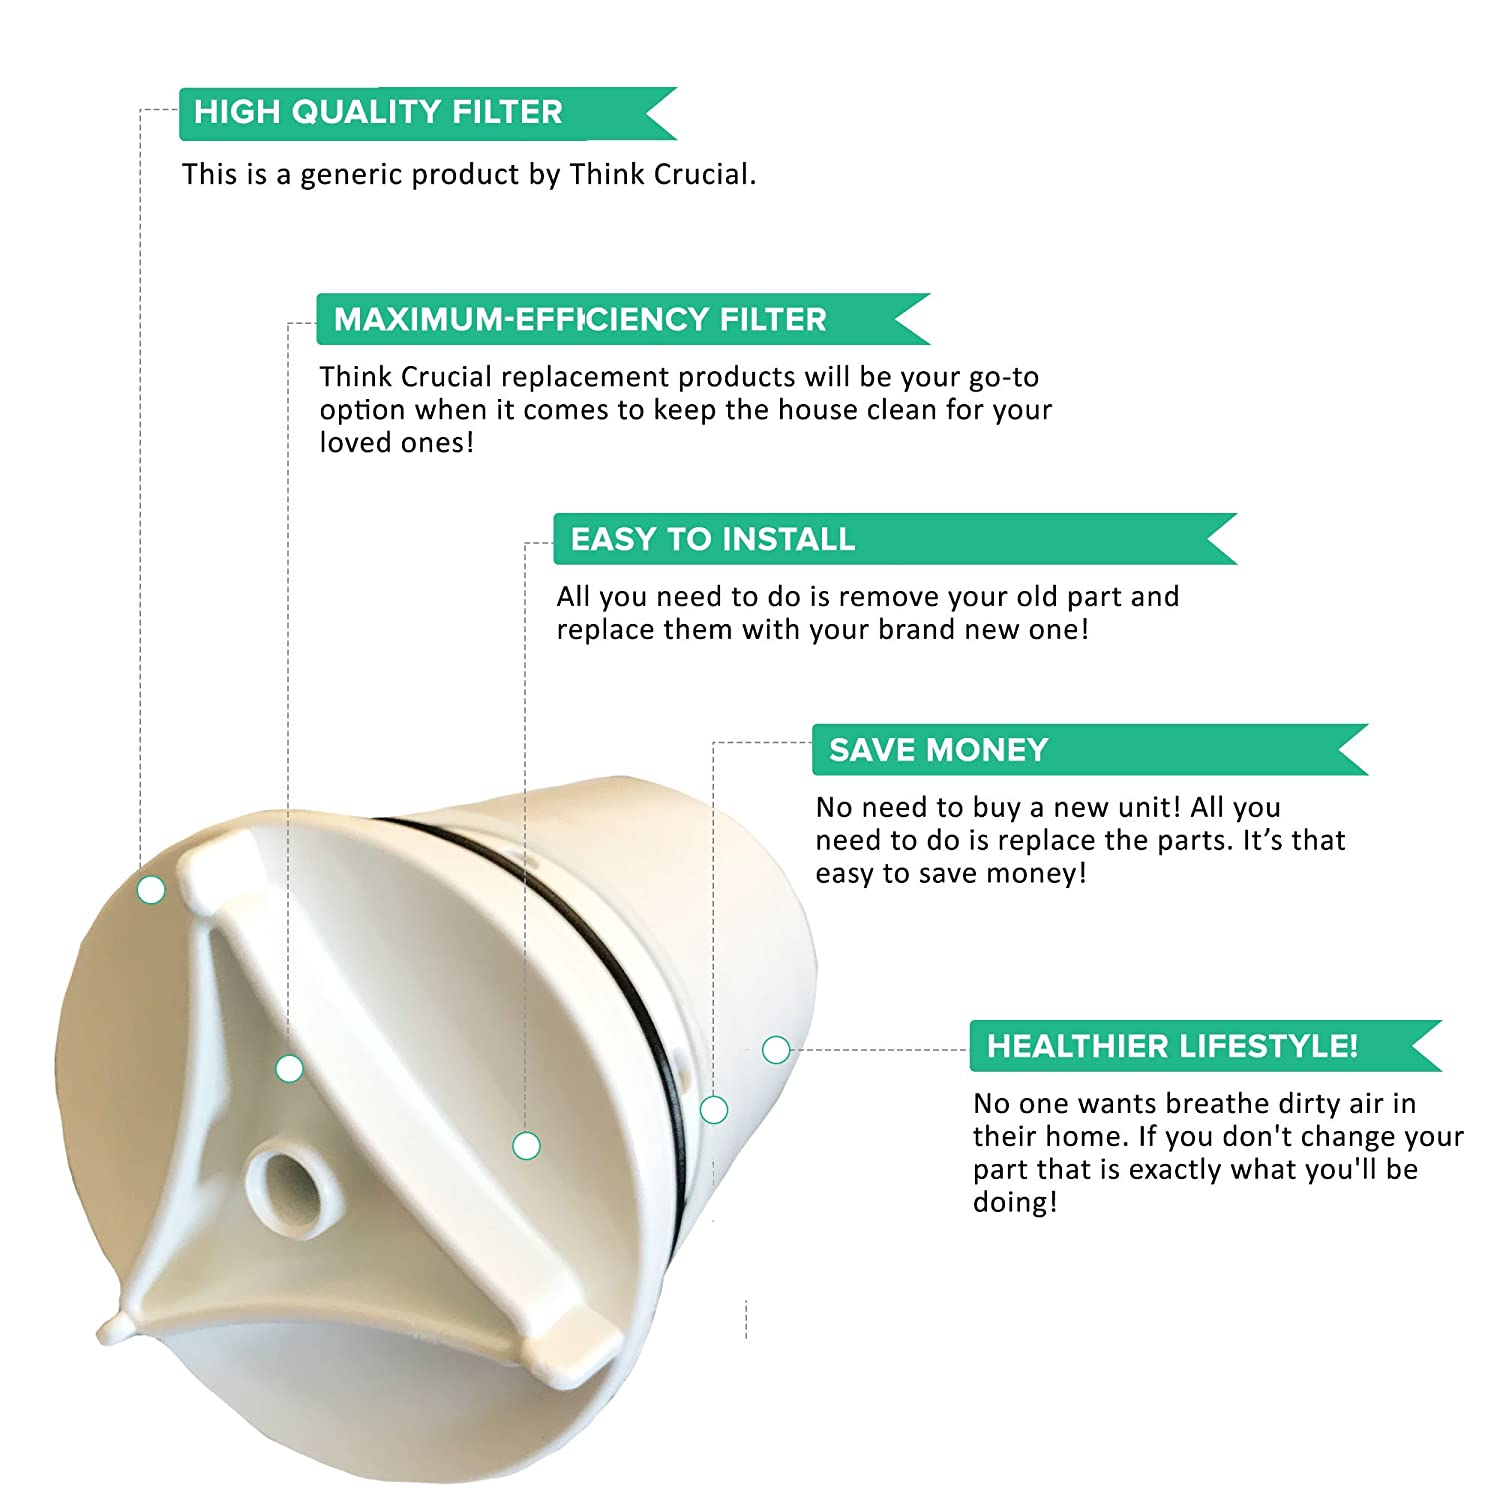 Think Crucial Replacement for Cuilligan Filter Cartridge Fits FM-15A Faucet Mount Filter for Sinks Compatible with Part # FM-15RA